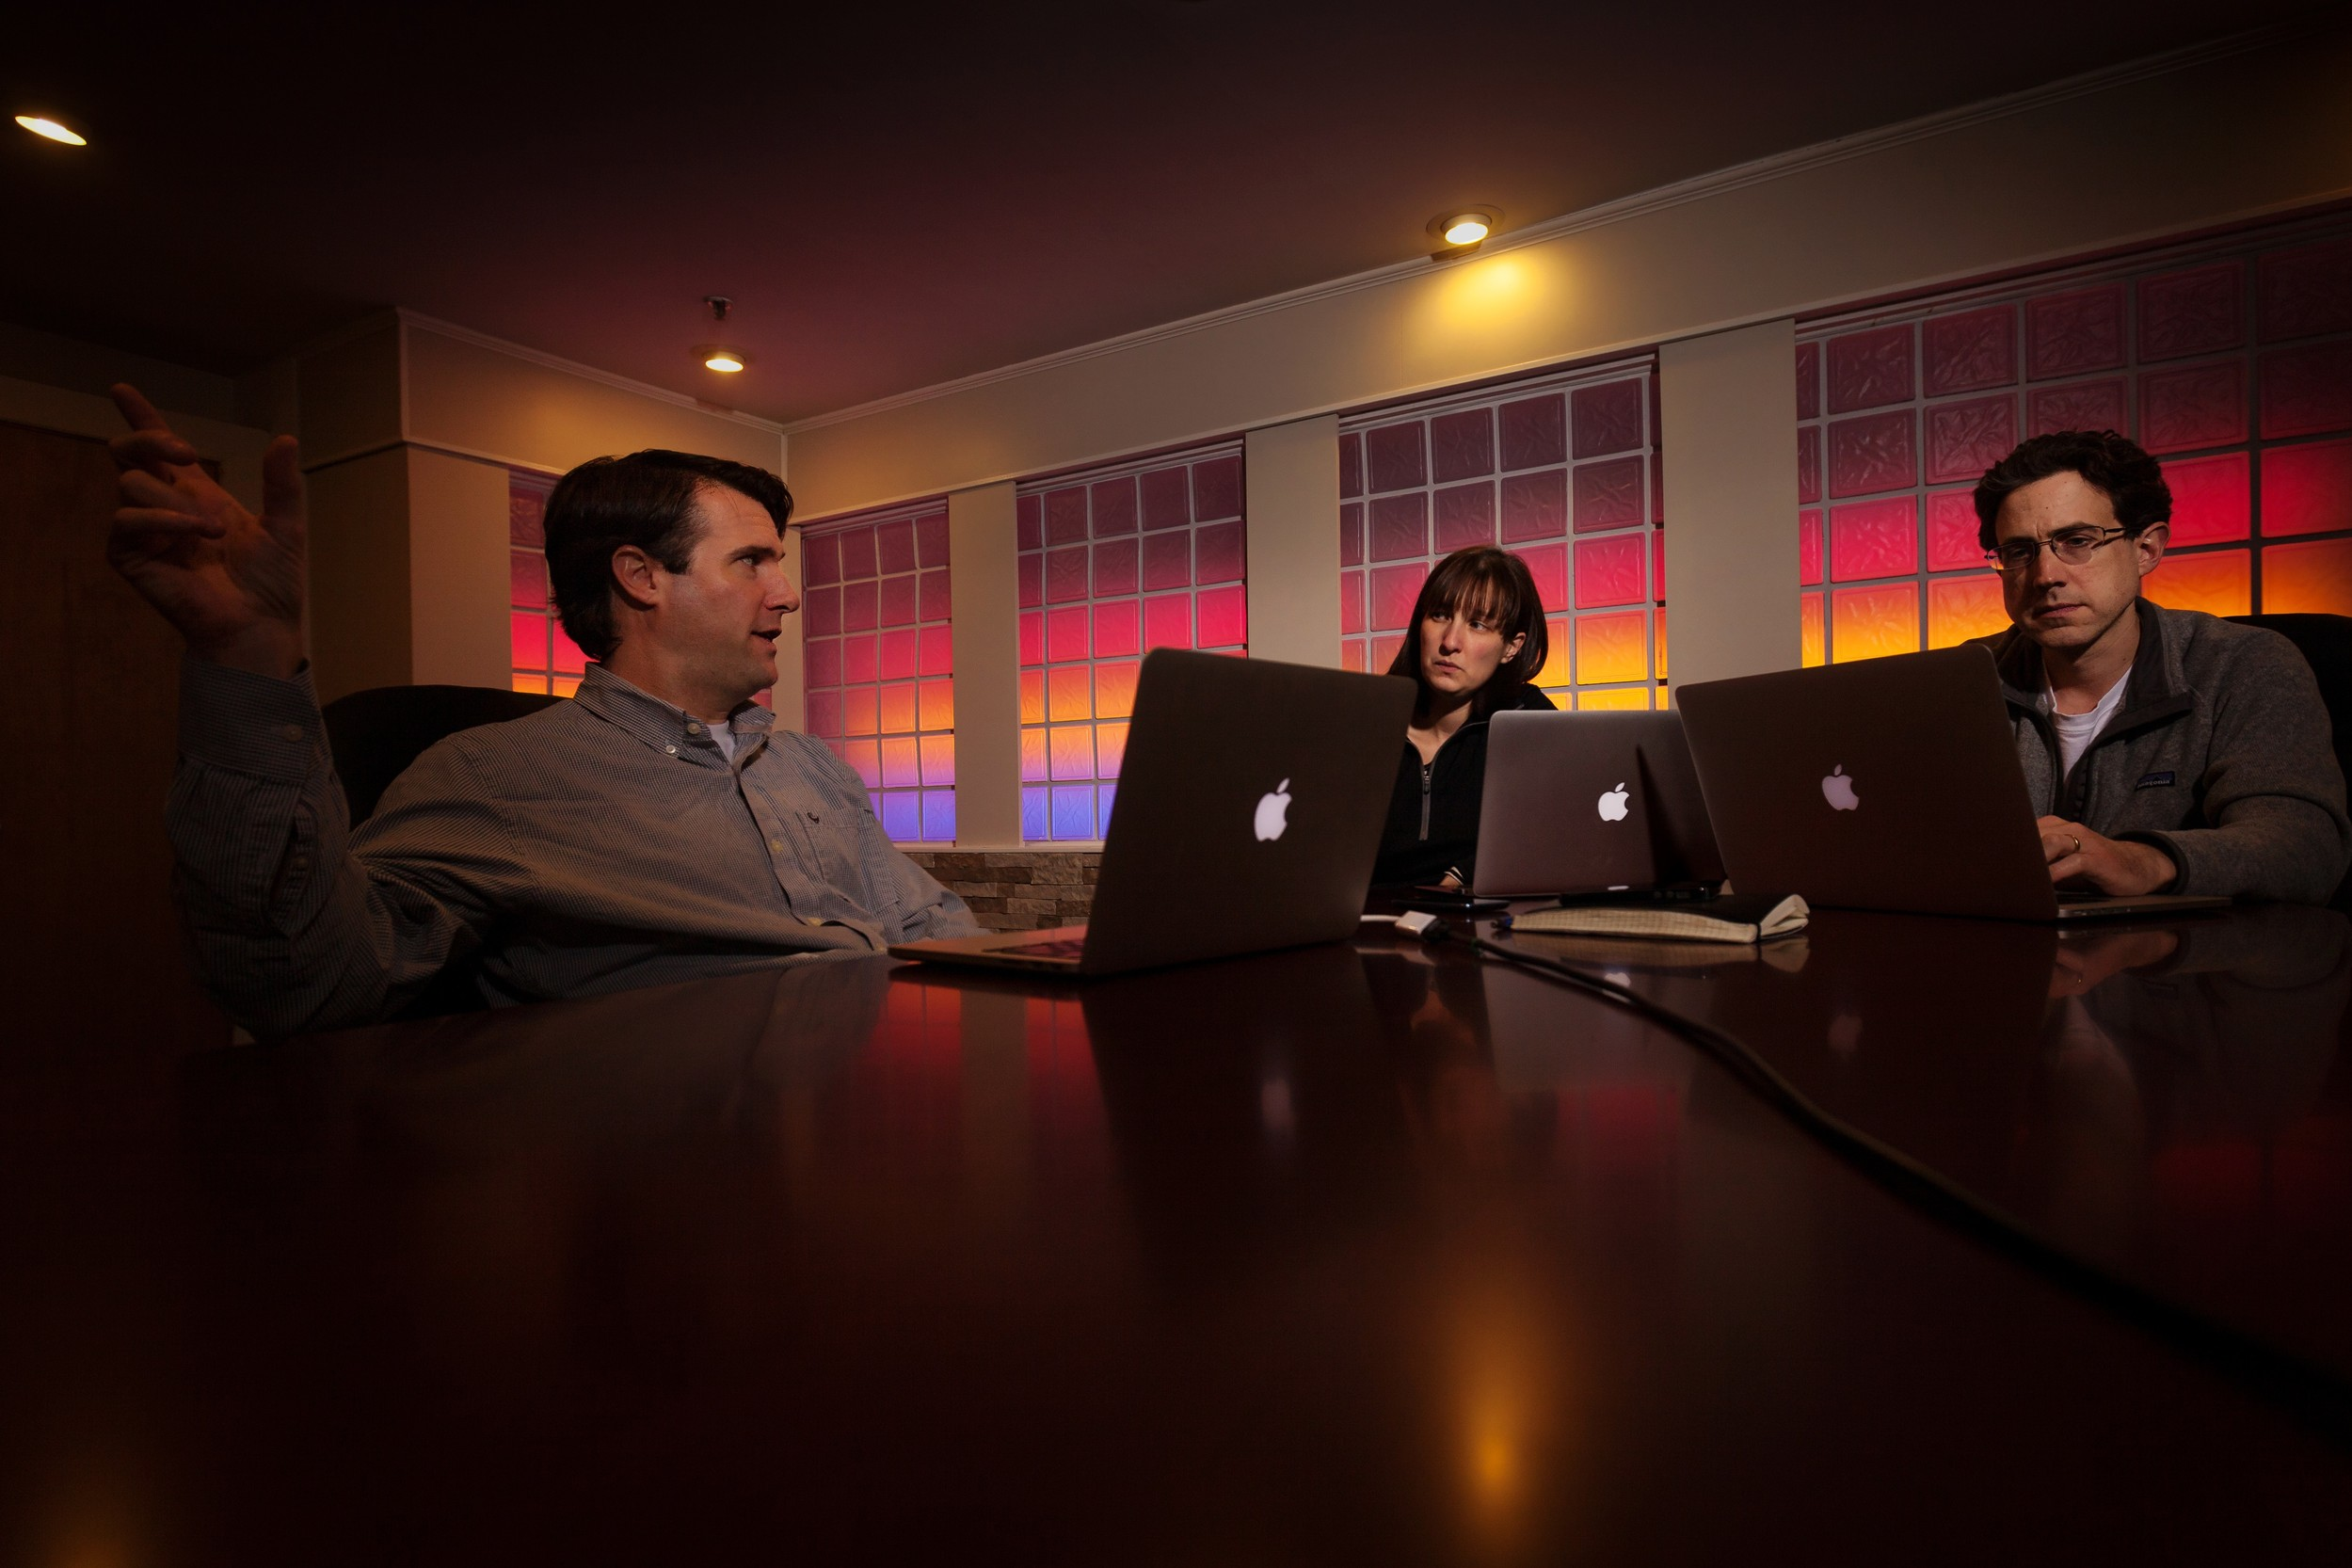 Nick Adams, left, co-founder and president of Care Thread, Renee S.Bessette, vice president of Marketing and Operations, and Andrew Shearer, co-founder and chief technical officer, at their offices in downtown Providence.